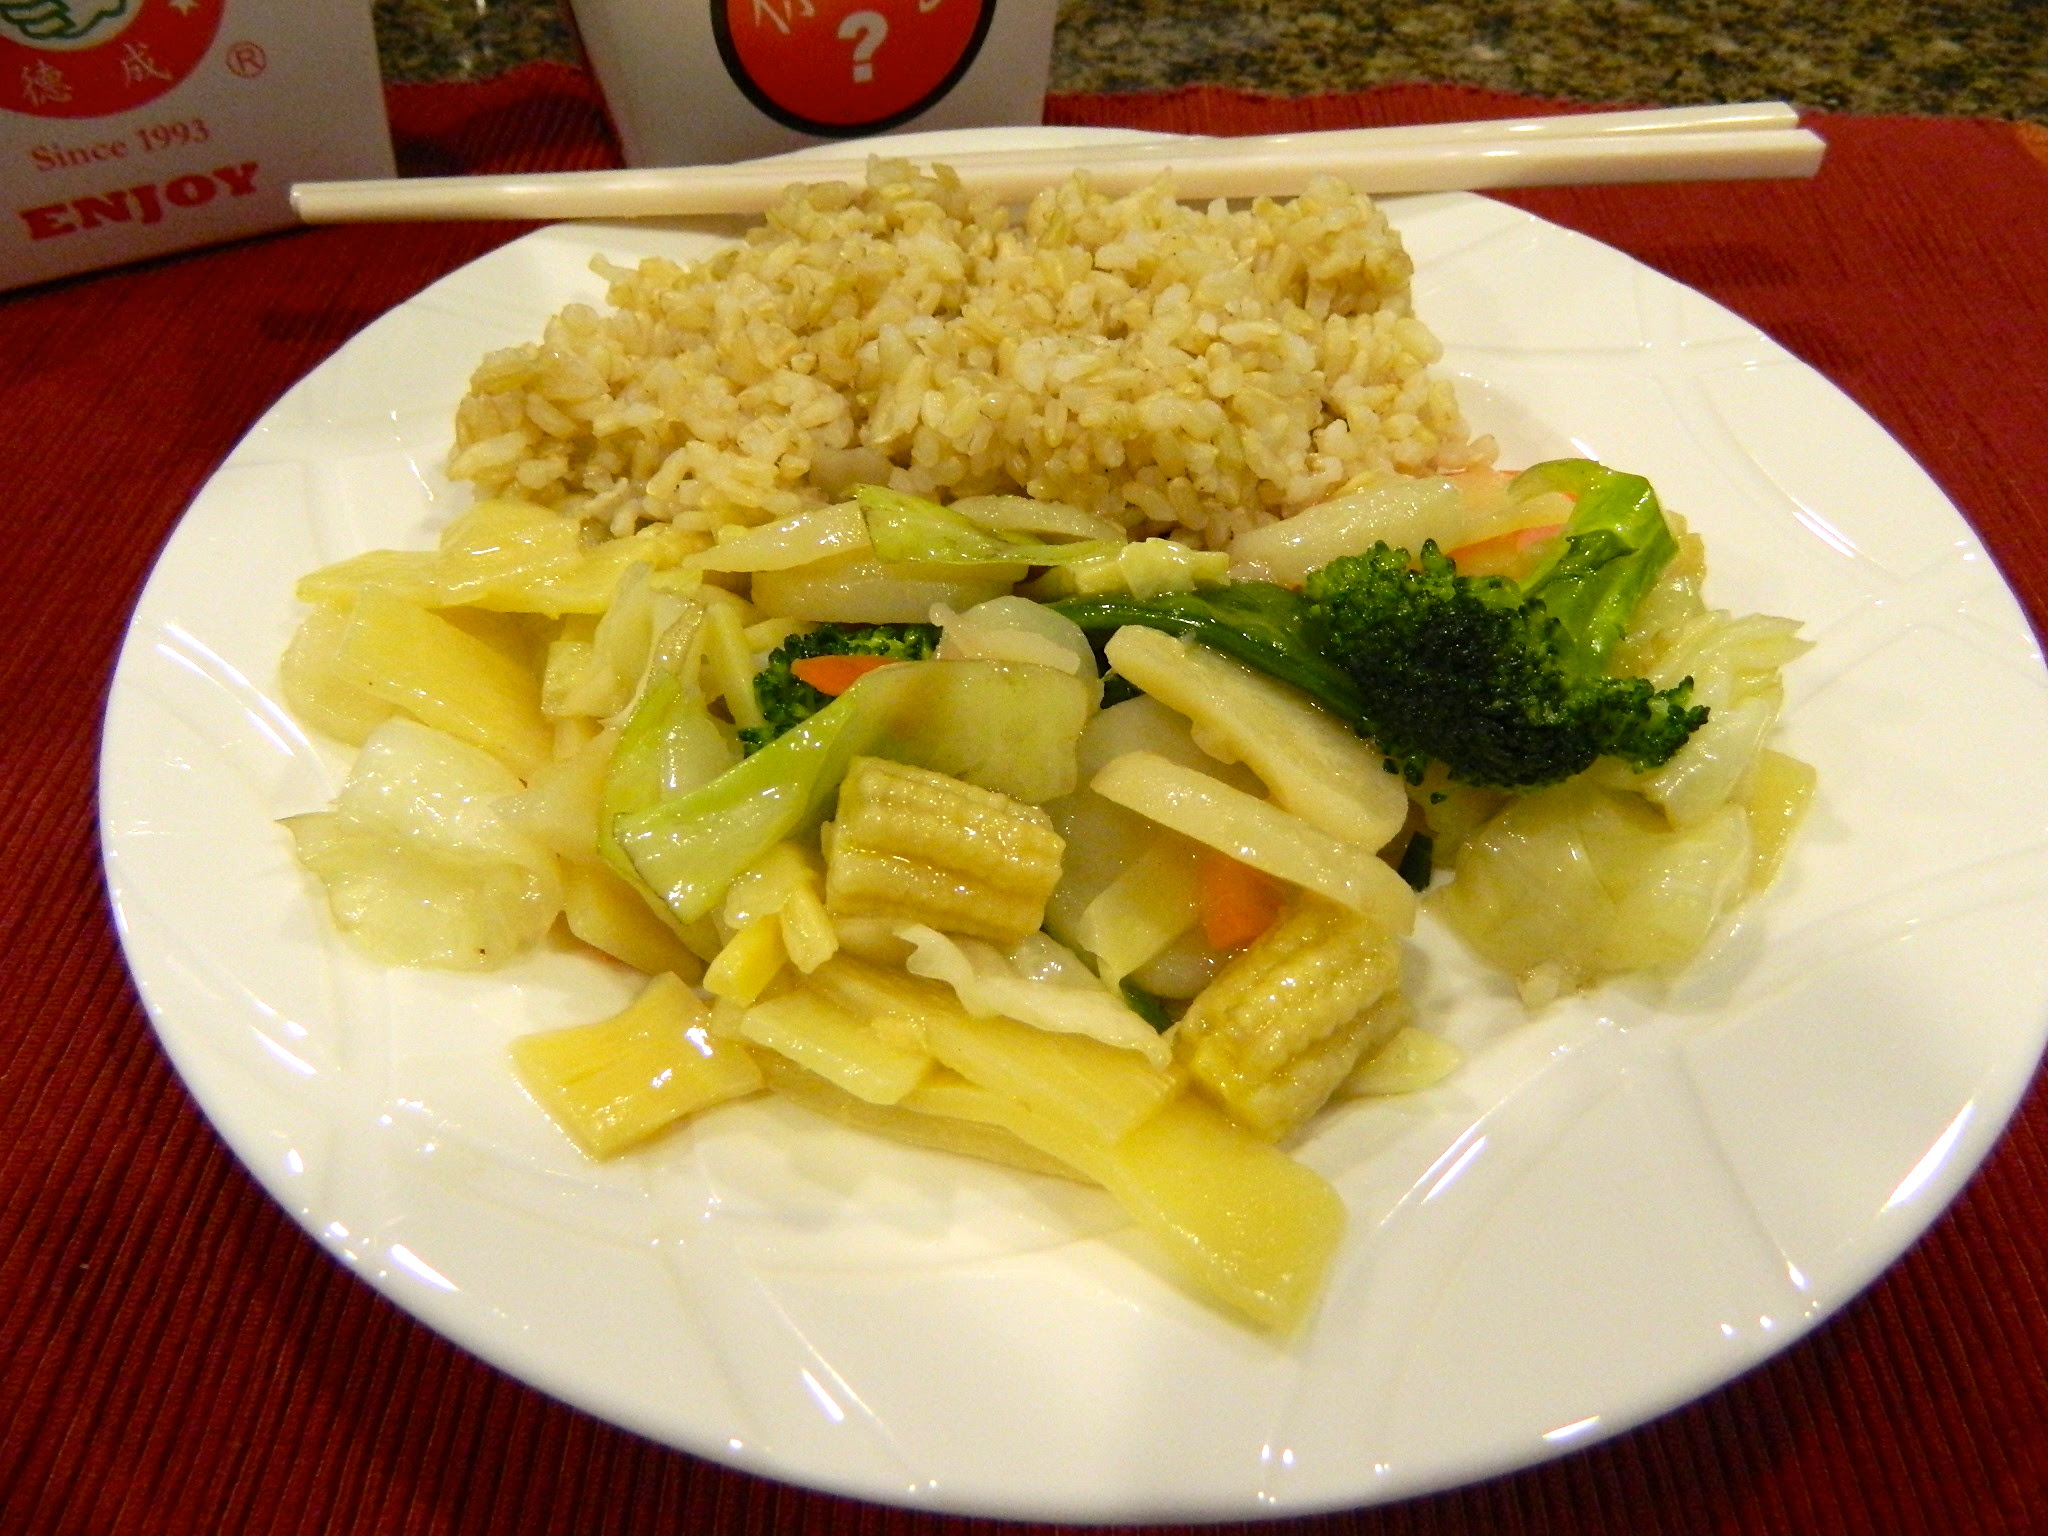 Making Healthy Options: Take-Out Chinese Food - Paola's ...